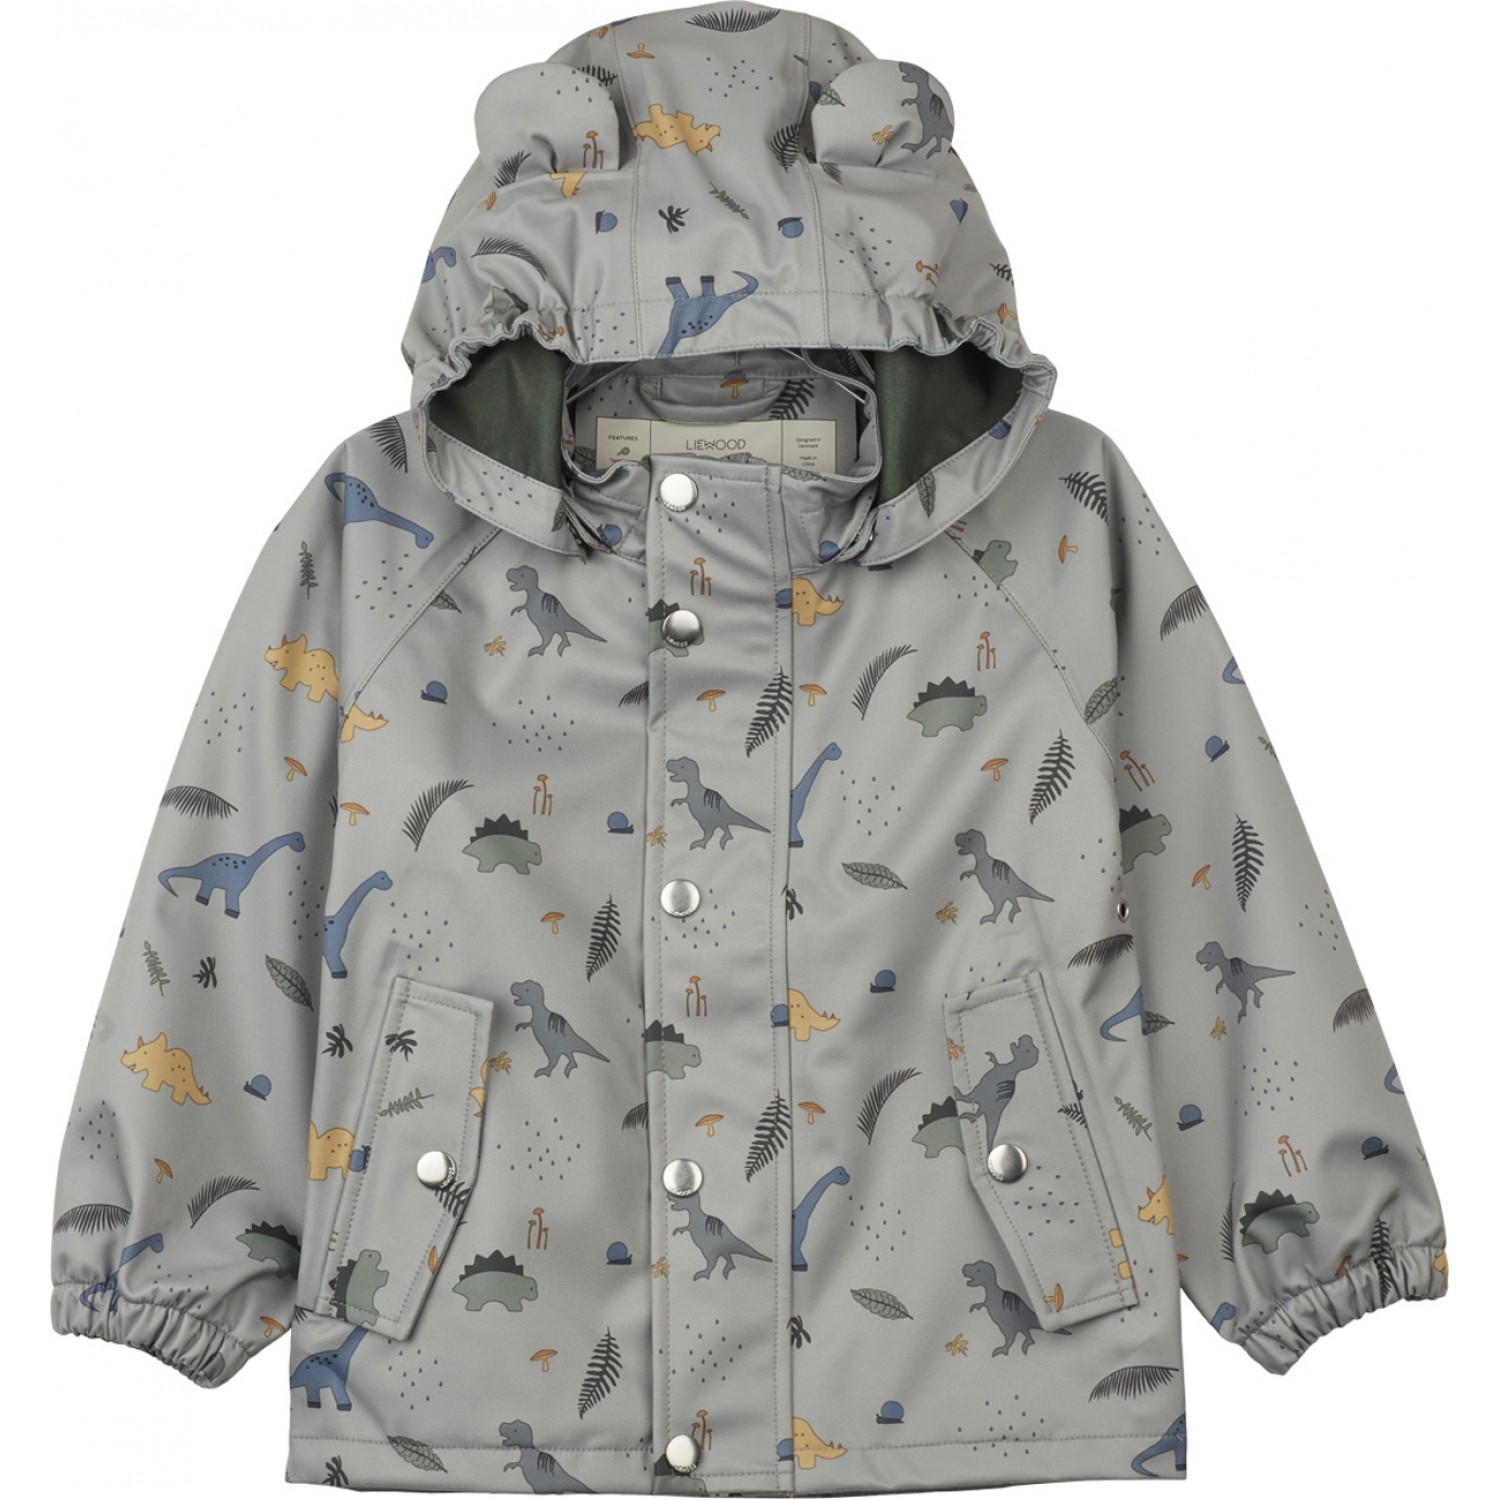 Dakota rainwear | Dino Dove blue